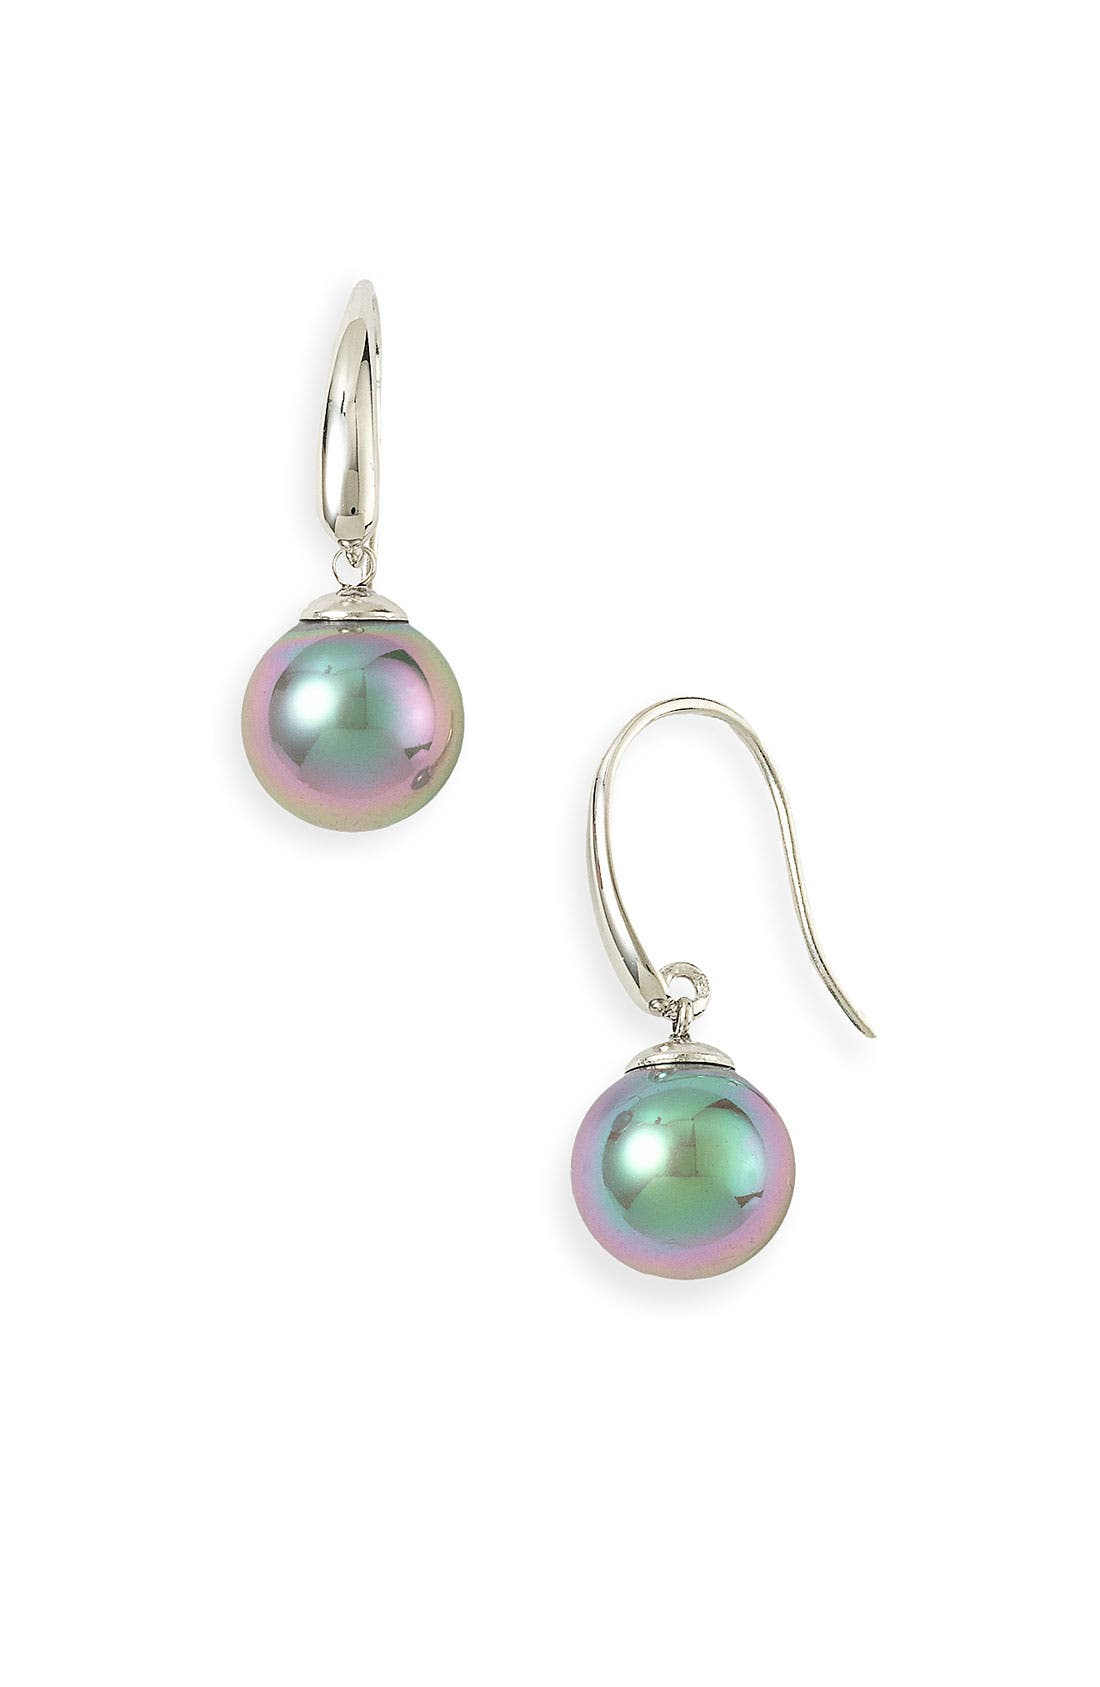 10mm Simulated Pearl Drop Earrings,                             Main thumbnail 1, color,                             GREY/ SILVER